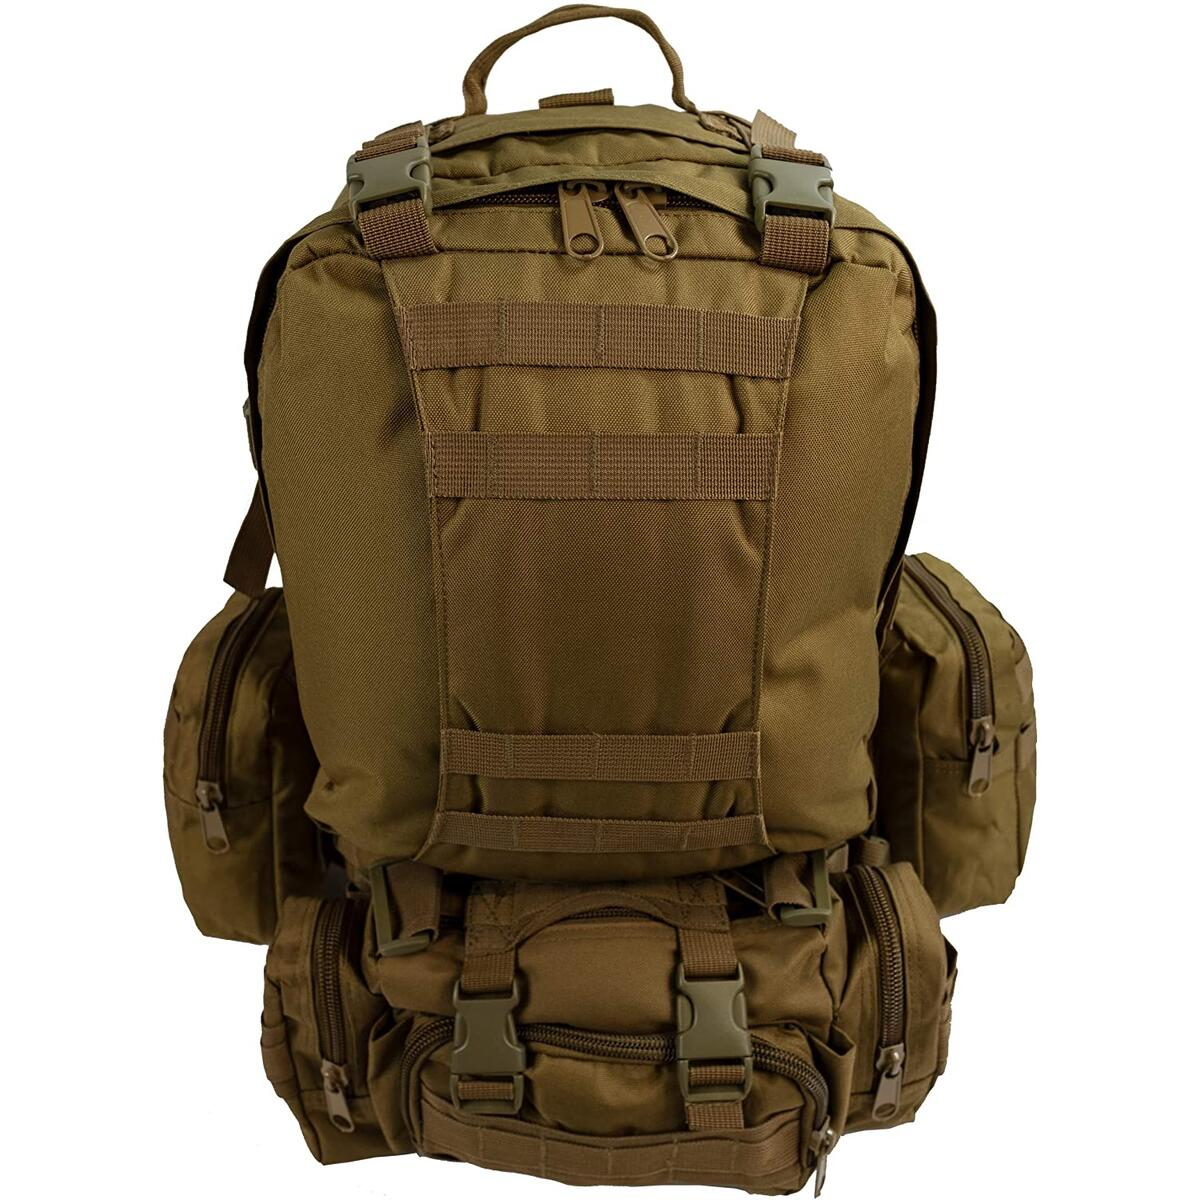 Military Army Tactical Backpack Combat 3 Day Assault Pack (Tan & Green Only)